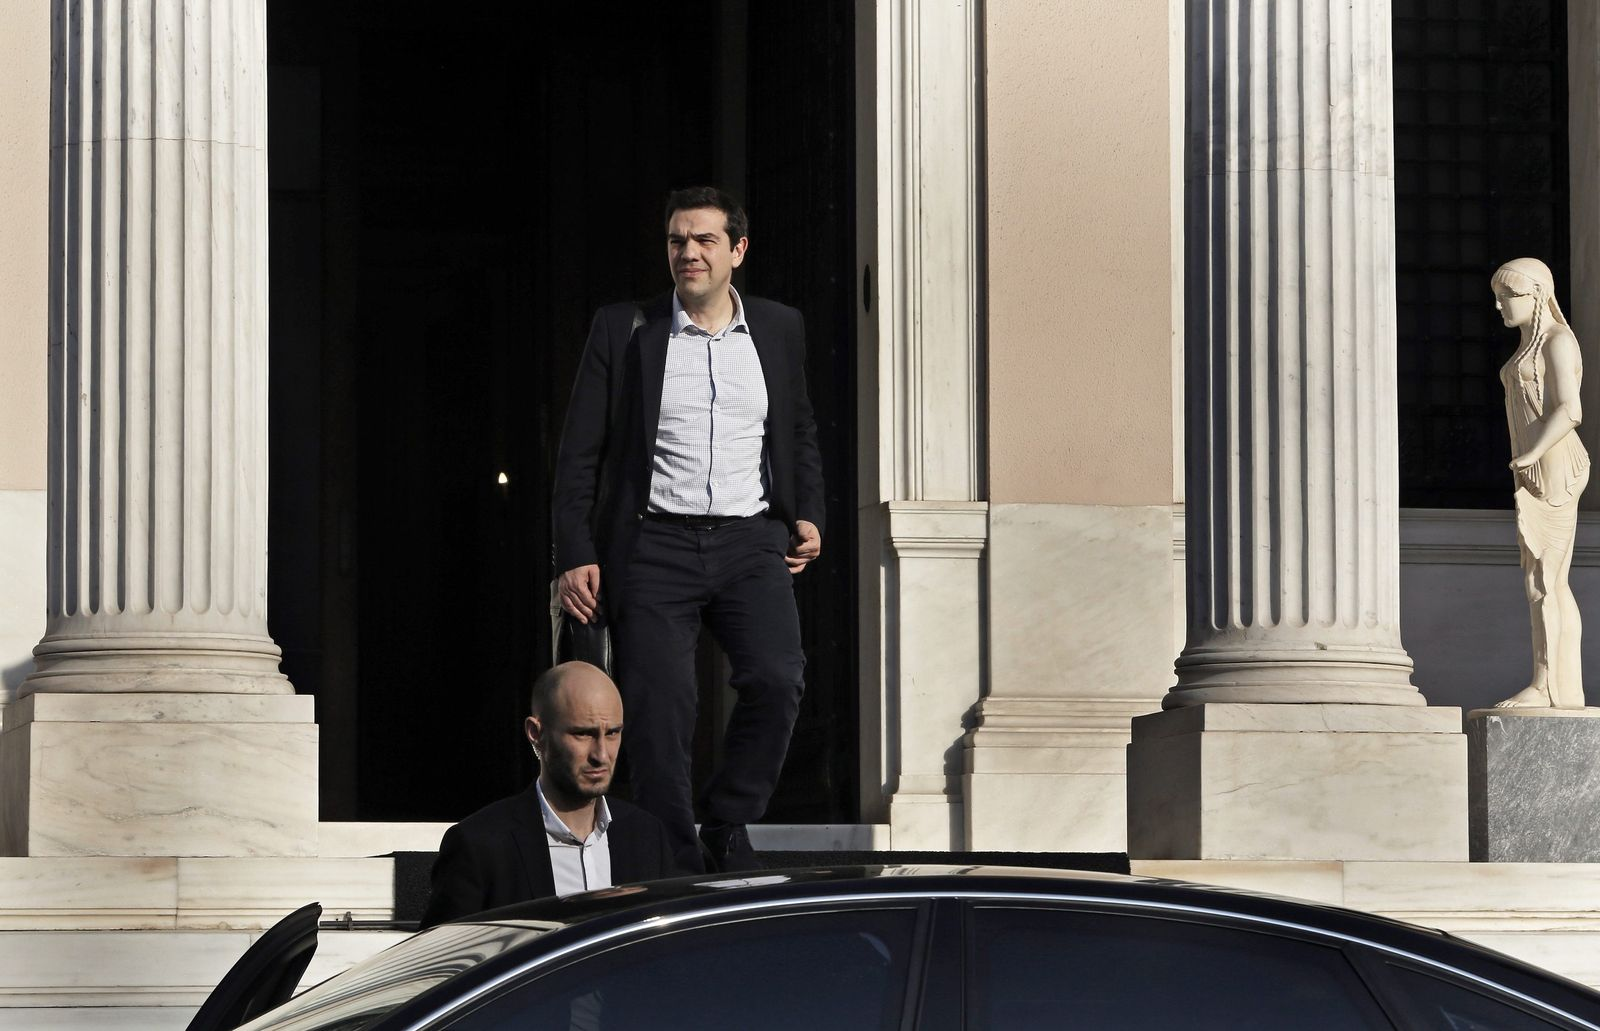 Greek PM Tsipras leaves his office in Athens